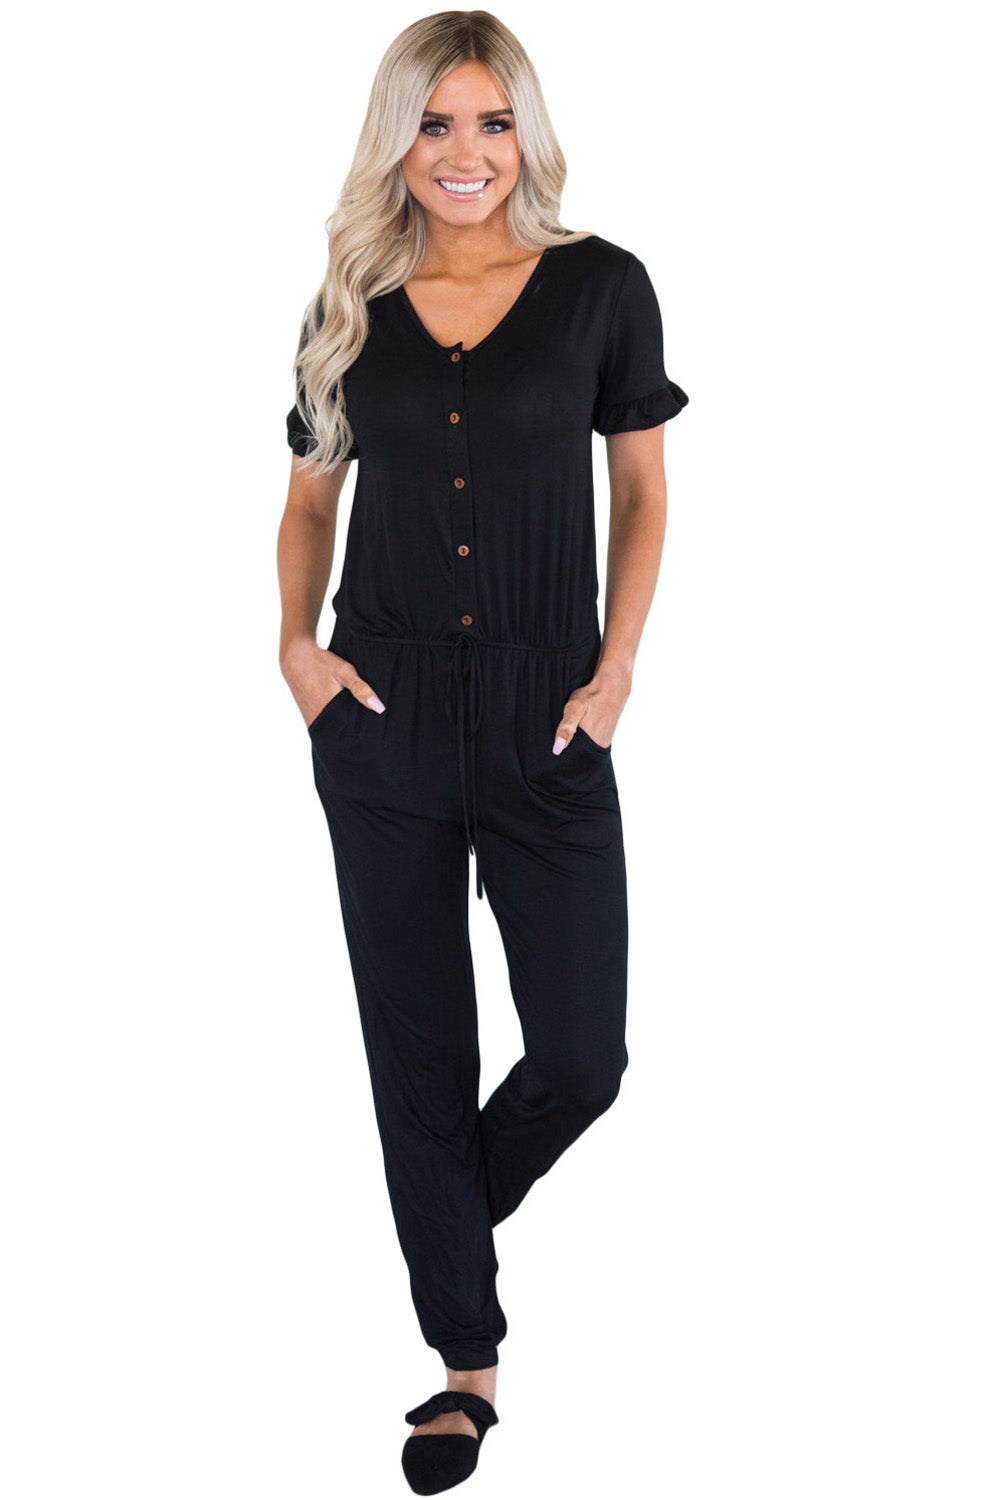 Black Ruffled Short Sleeve Casual Jersey Jumpsuit - Its Trendy Frenzy